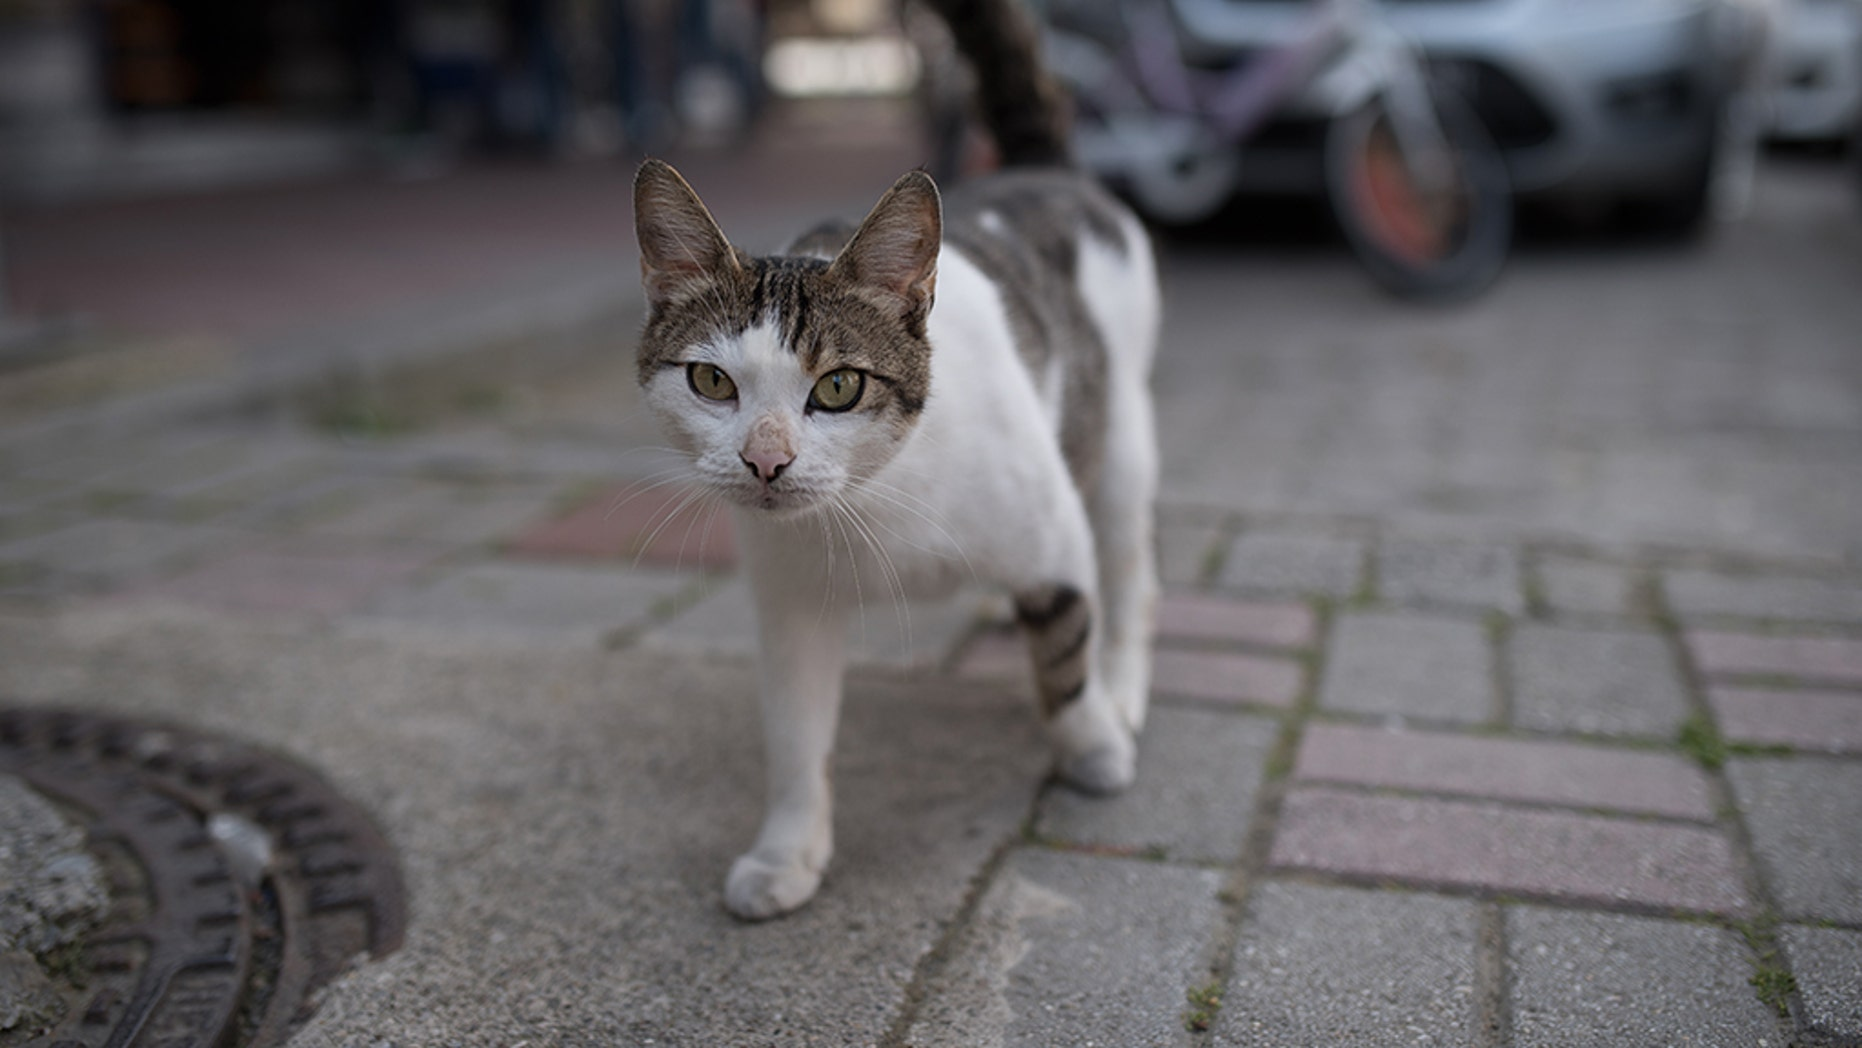 A British tourist died after contracting rabies from a cat bite in Morocco.